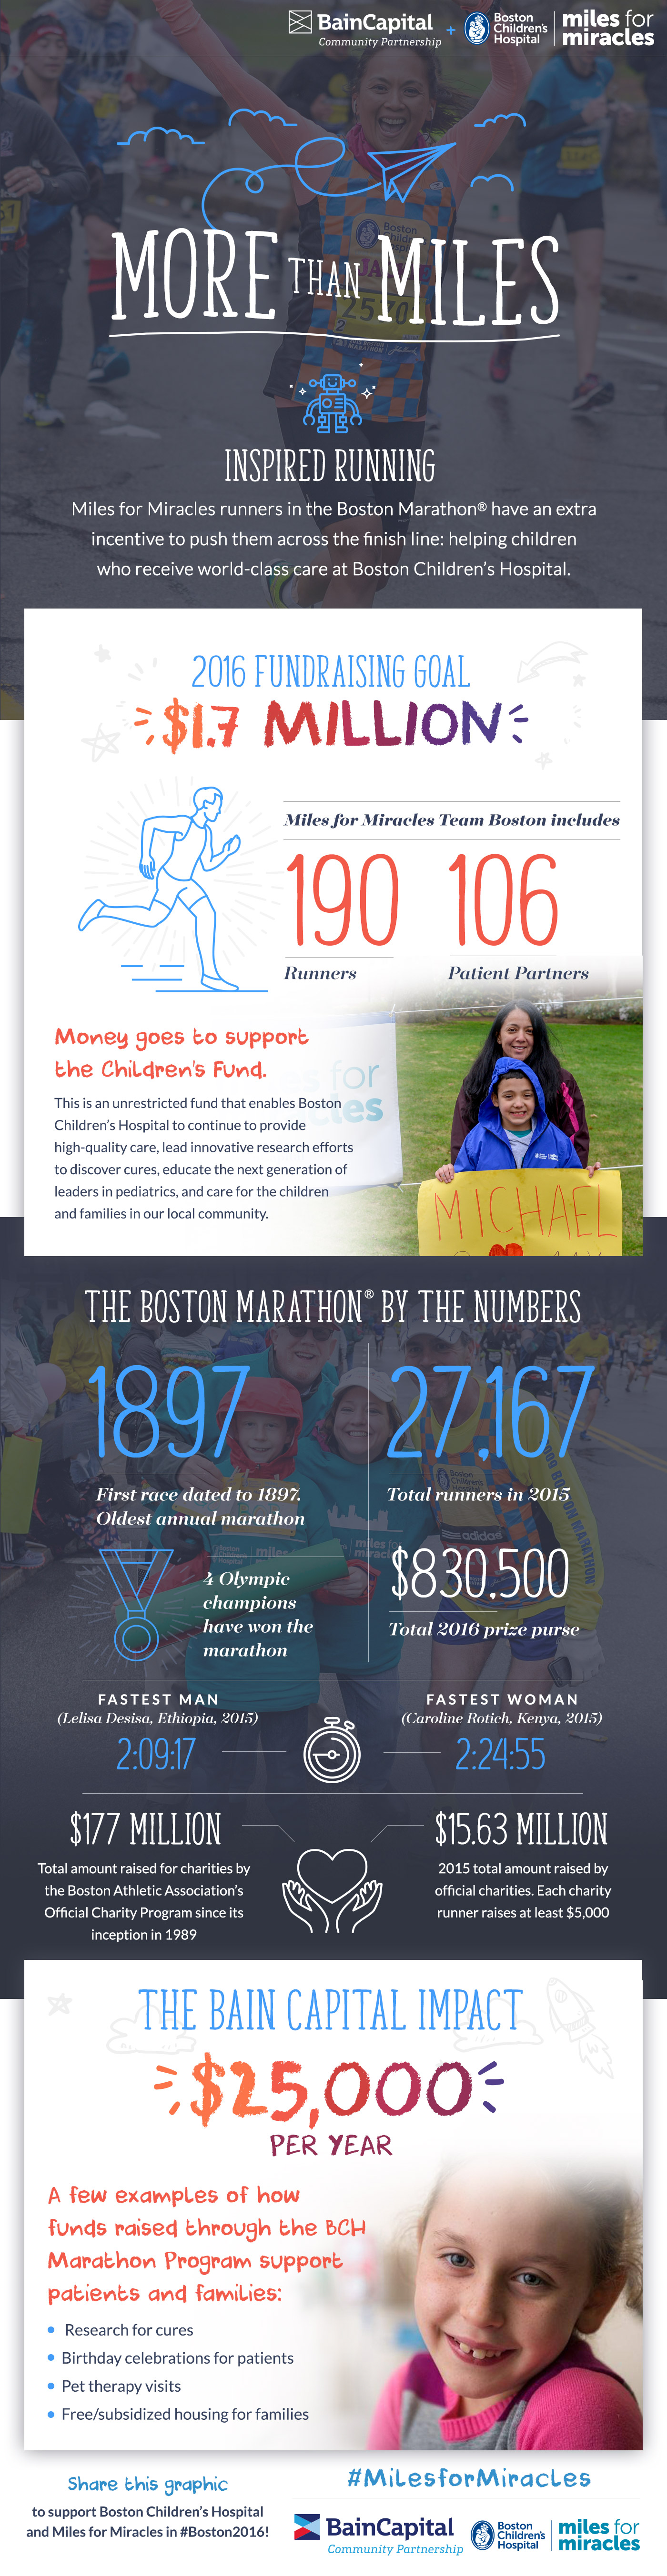 Bain Capital More Than Miles Boston Marathon 2016 Infographic